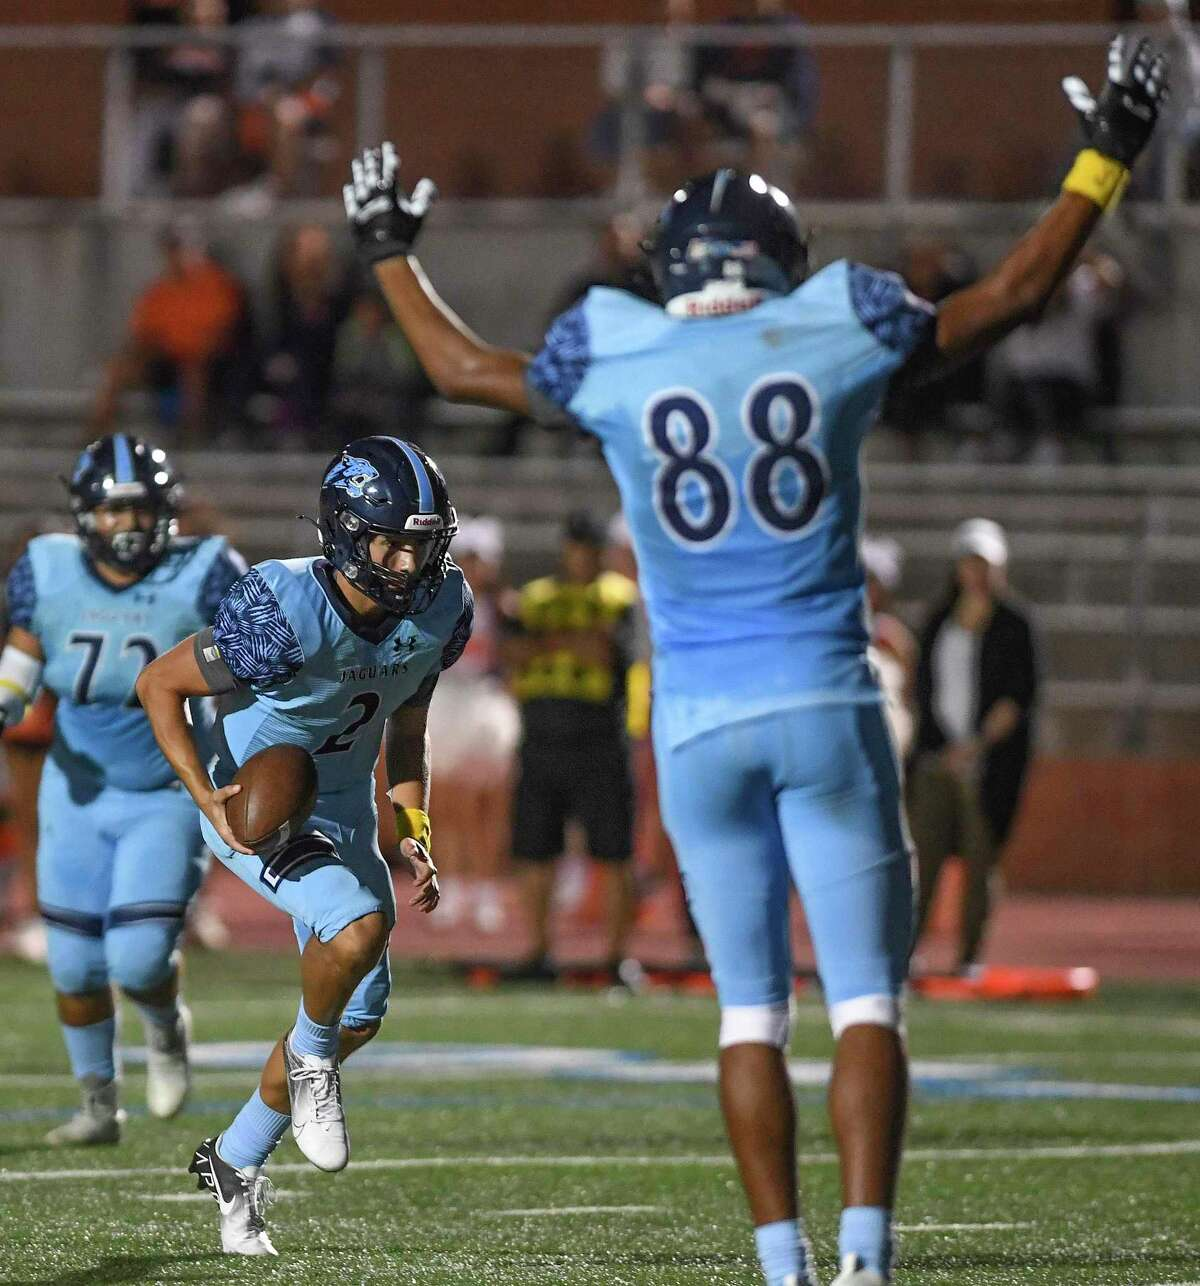 Johnson's Canaan Fairley (88) celebrates as quarterback Cruz Kirwan scores a touchdown during Friday's game against Brandeis. The game pitted a pair of undefeated District 28-6A teams.